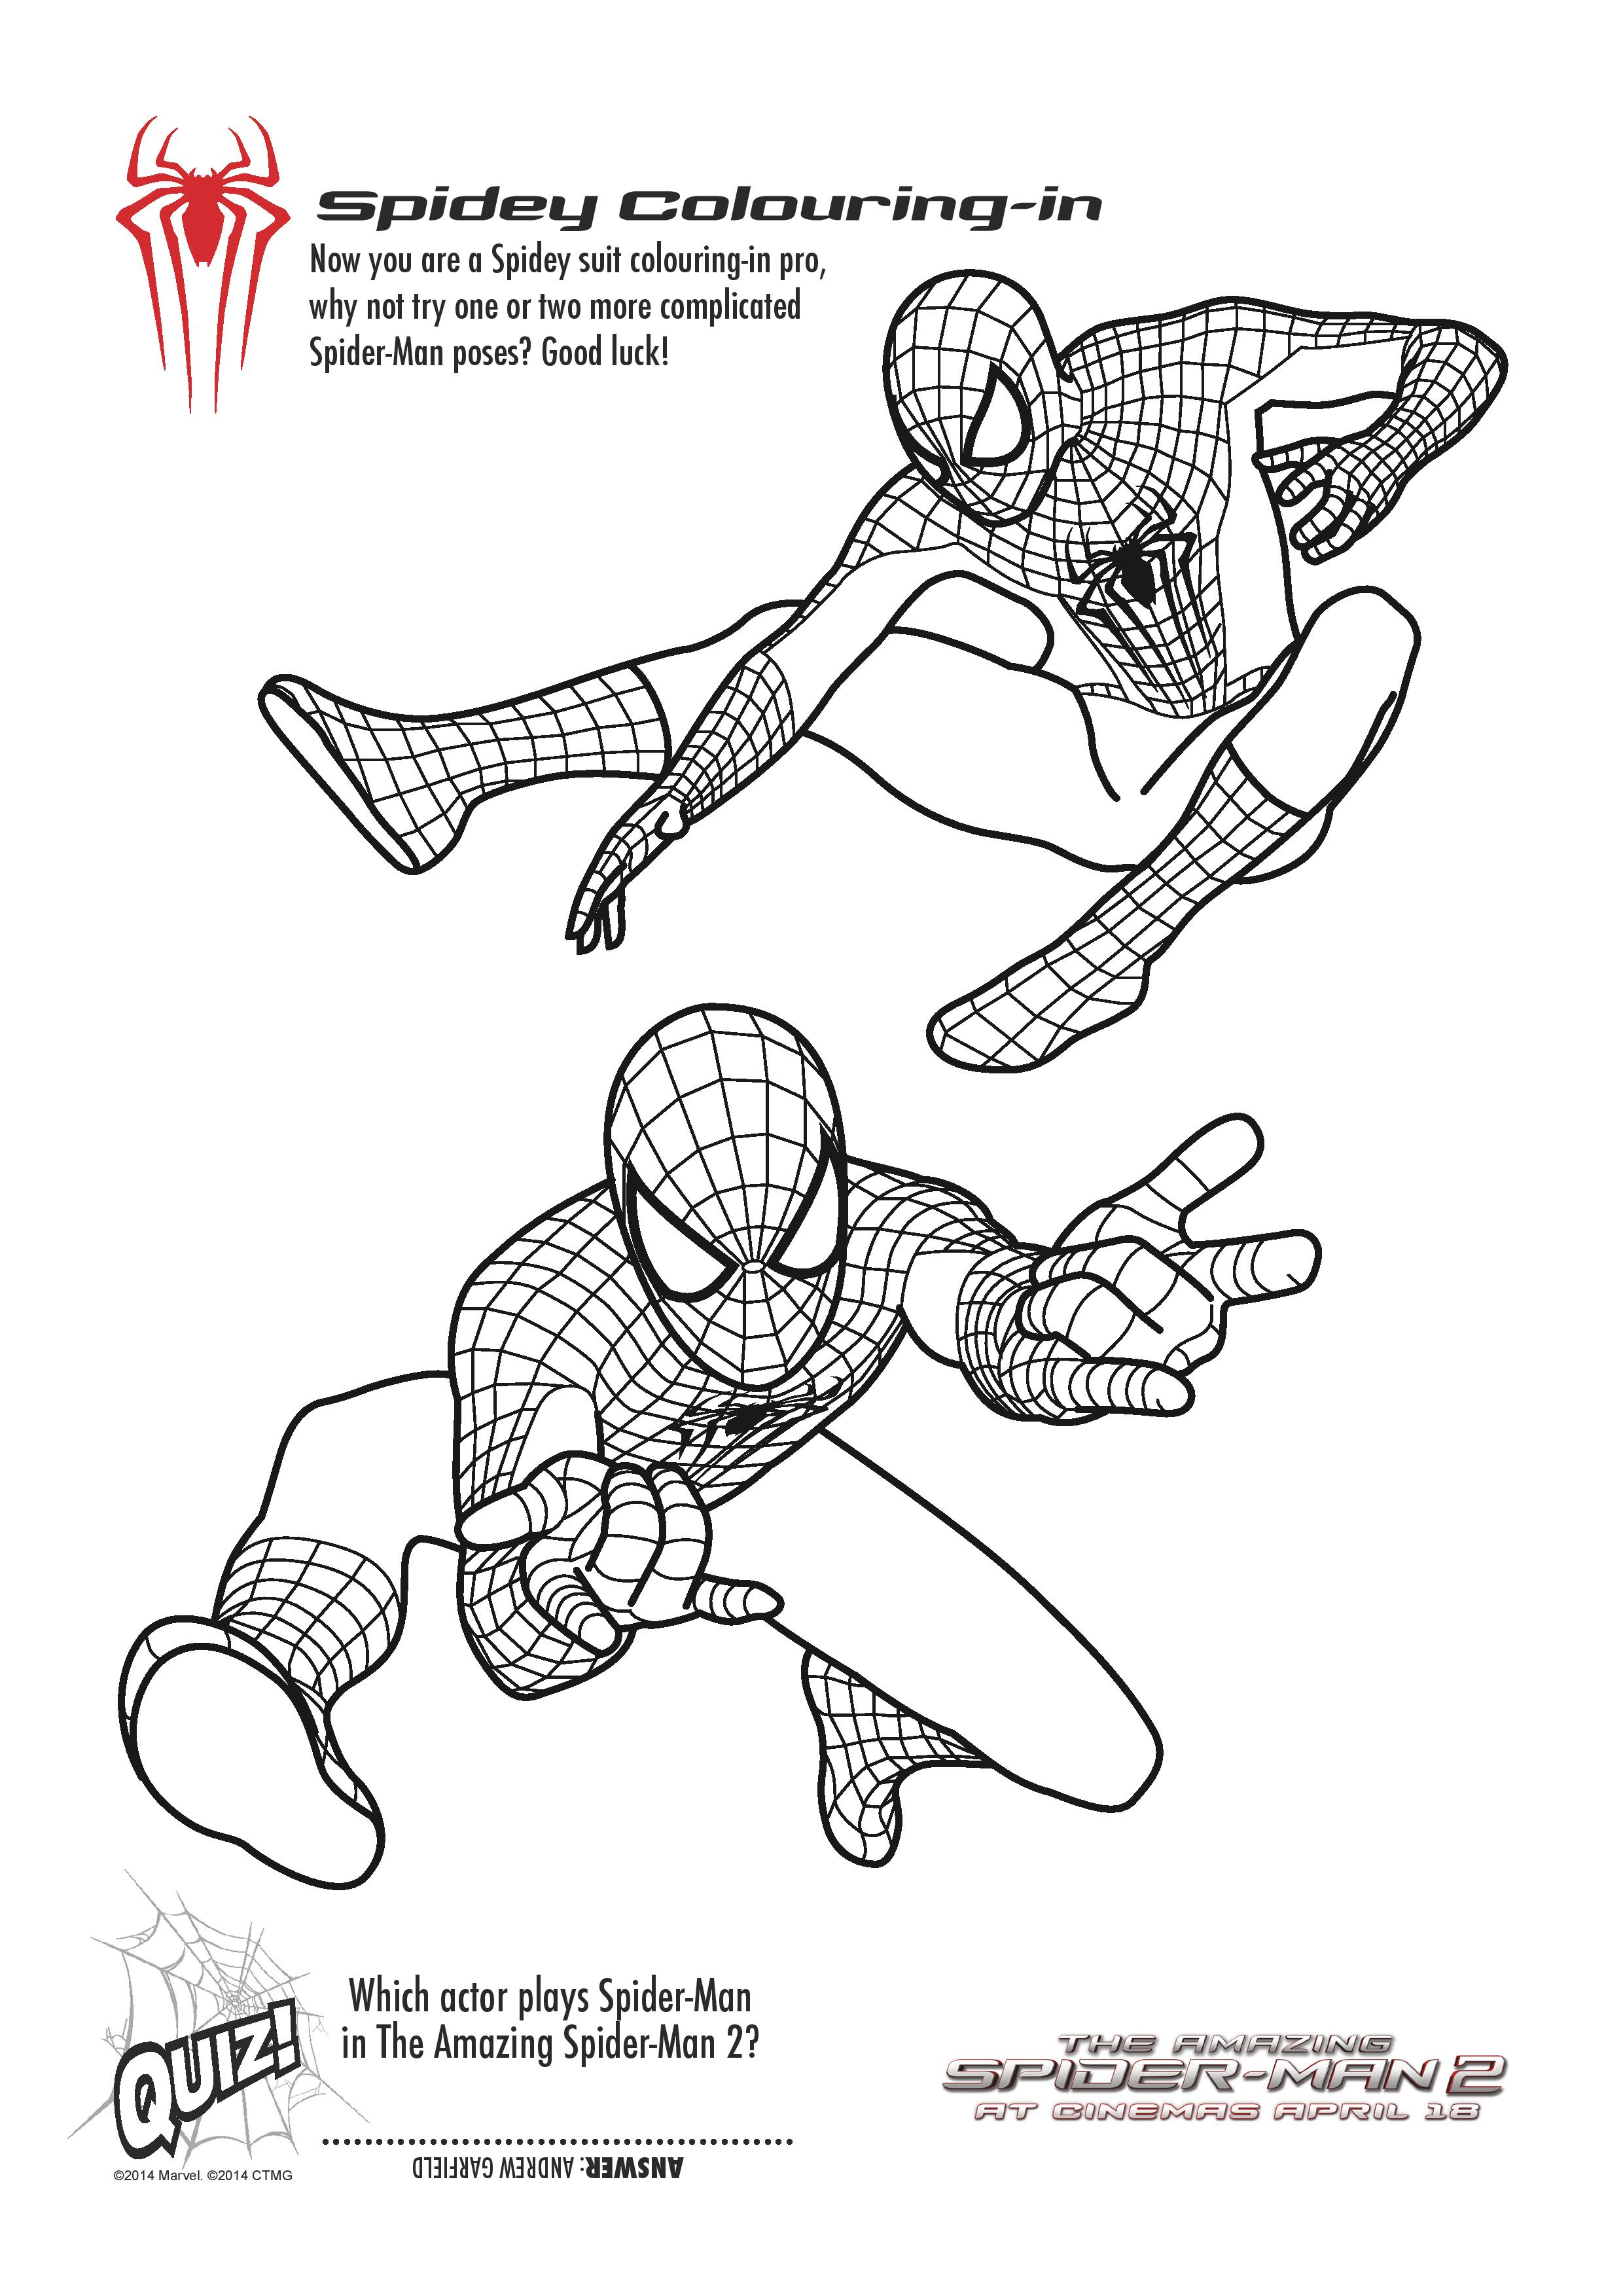 spiderman2_activity_pack_v4.1-page-004